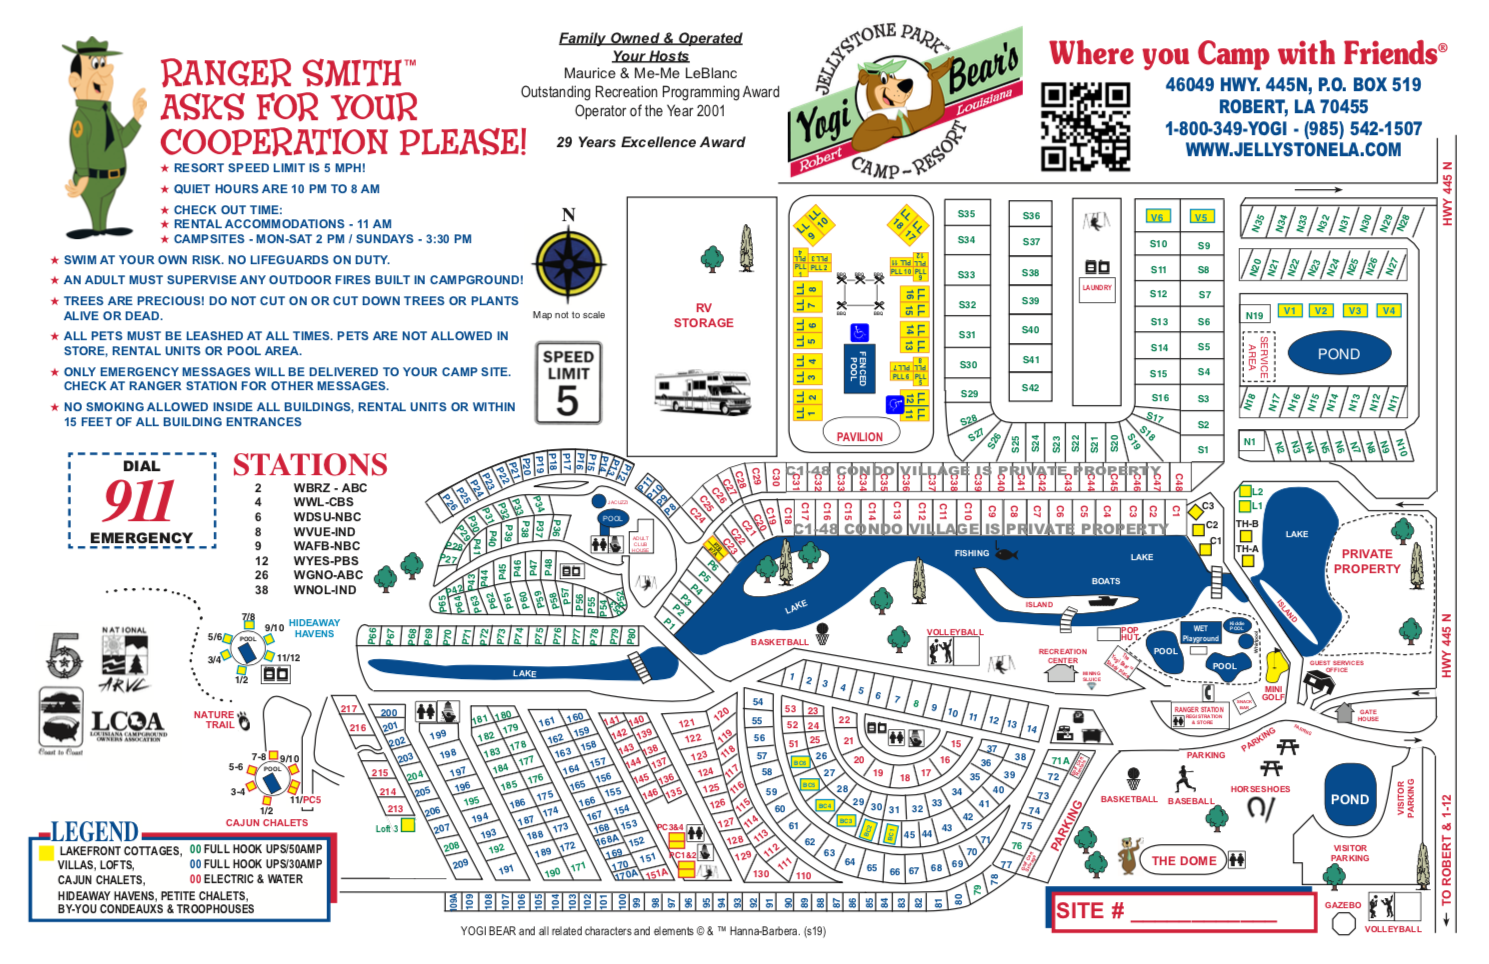 map of Yogi Bear's Jellystone Park in Robert, Louisiana